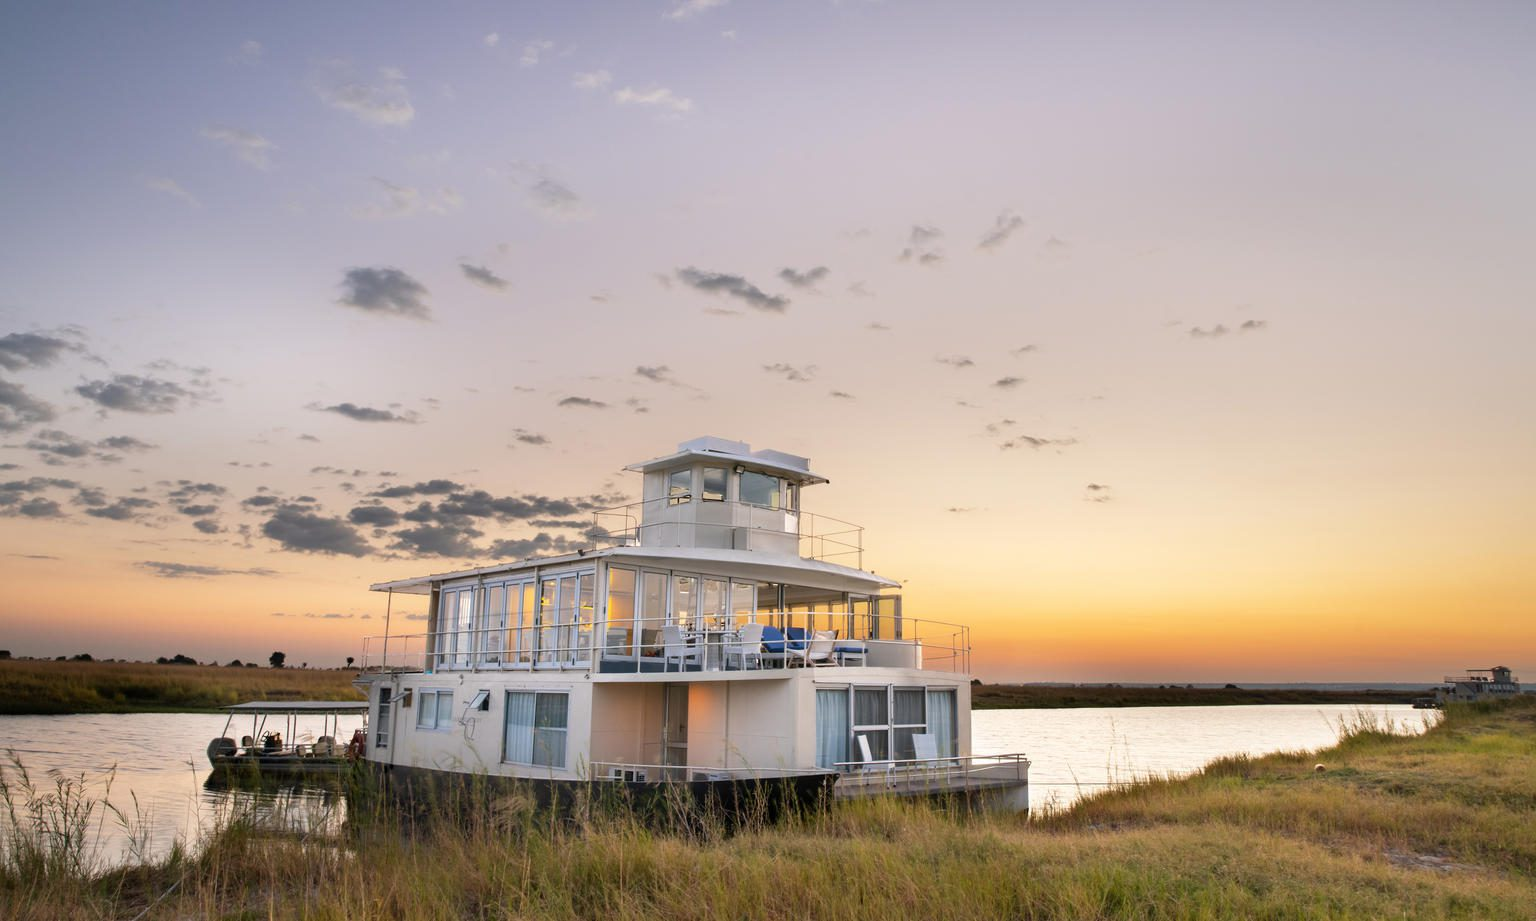 daybreak on the chobe river with a houseboat